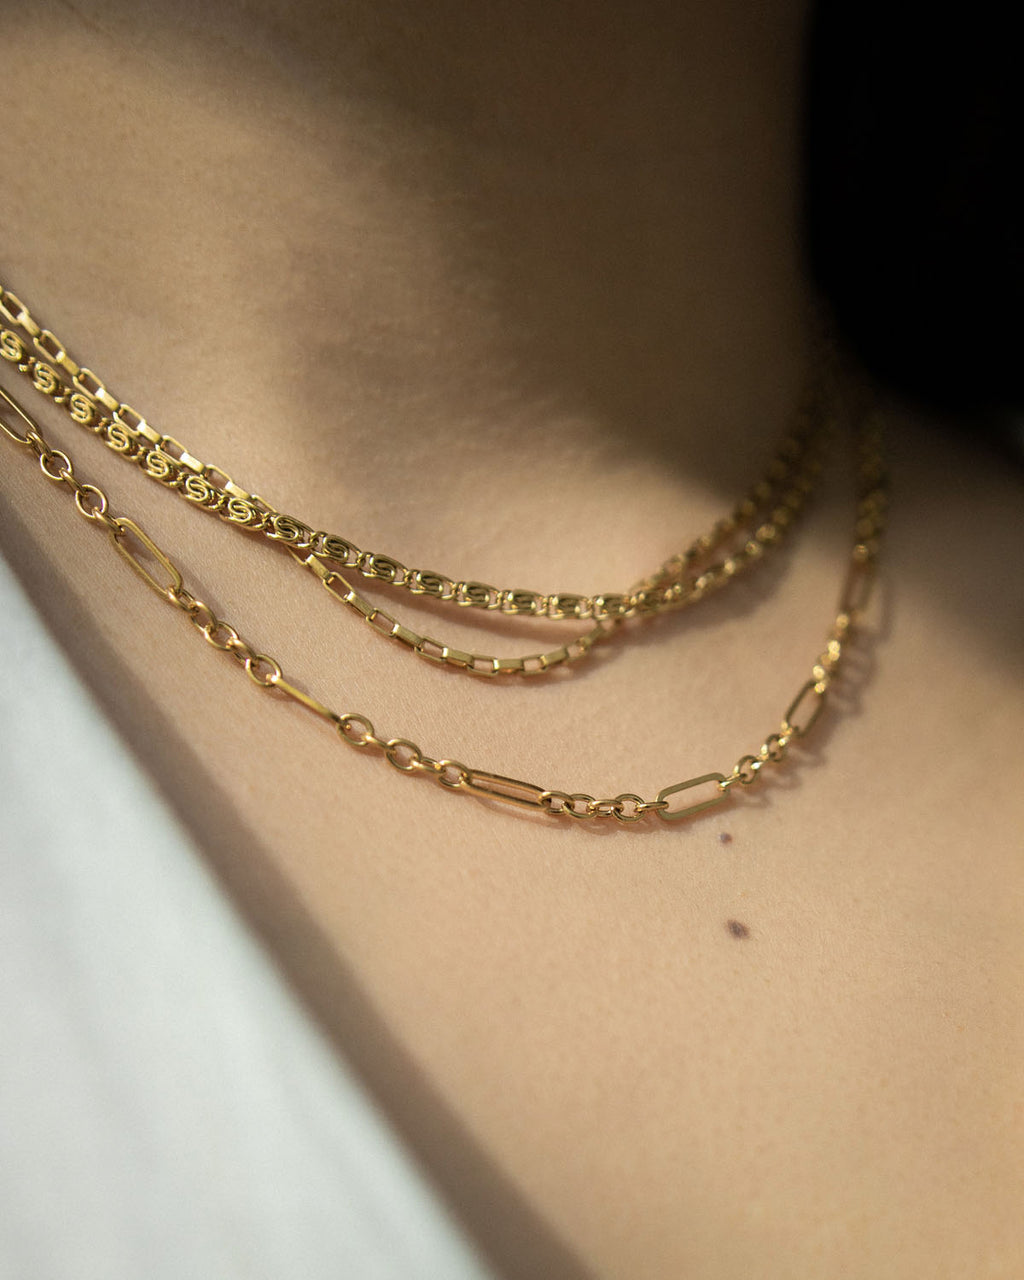 How to rock that multiple gold necklaces look by The Hexad Jewelry